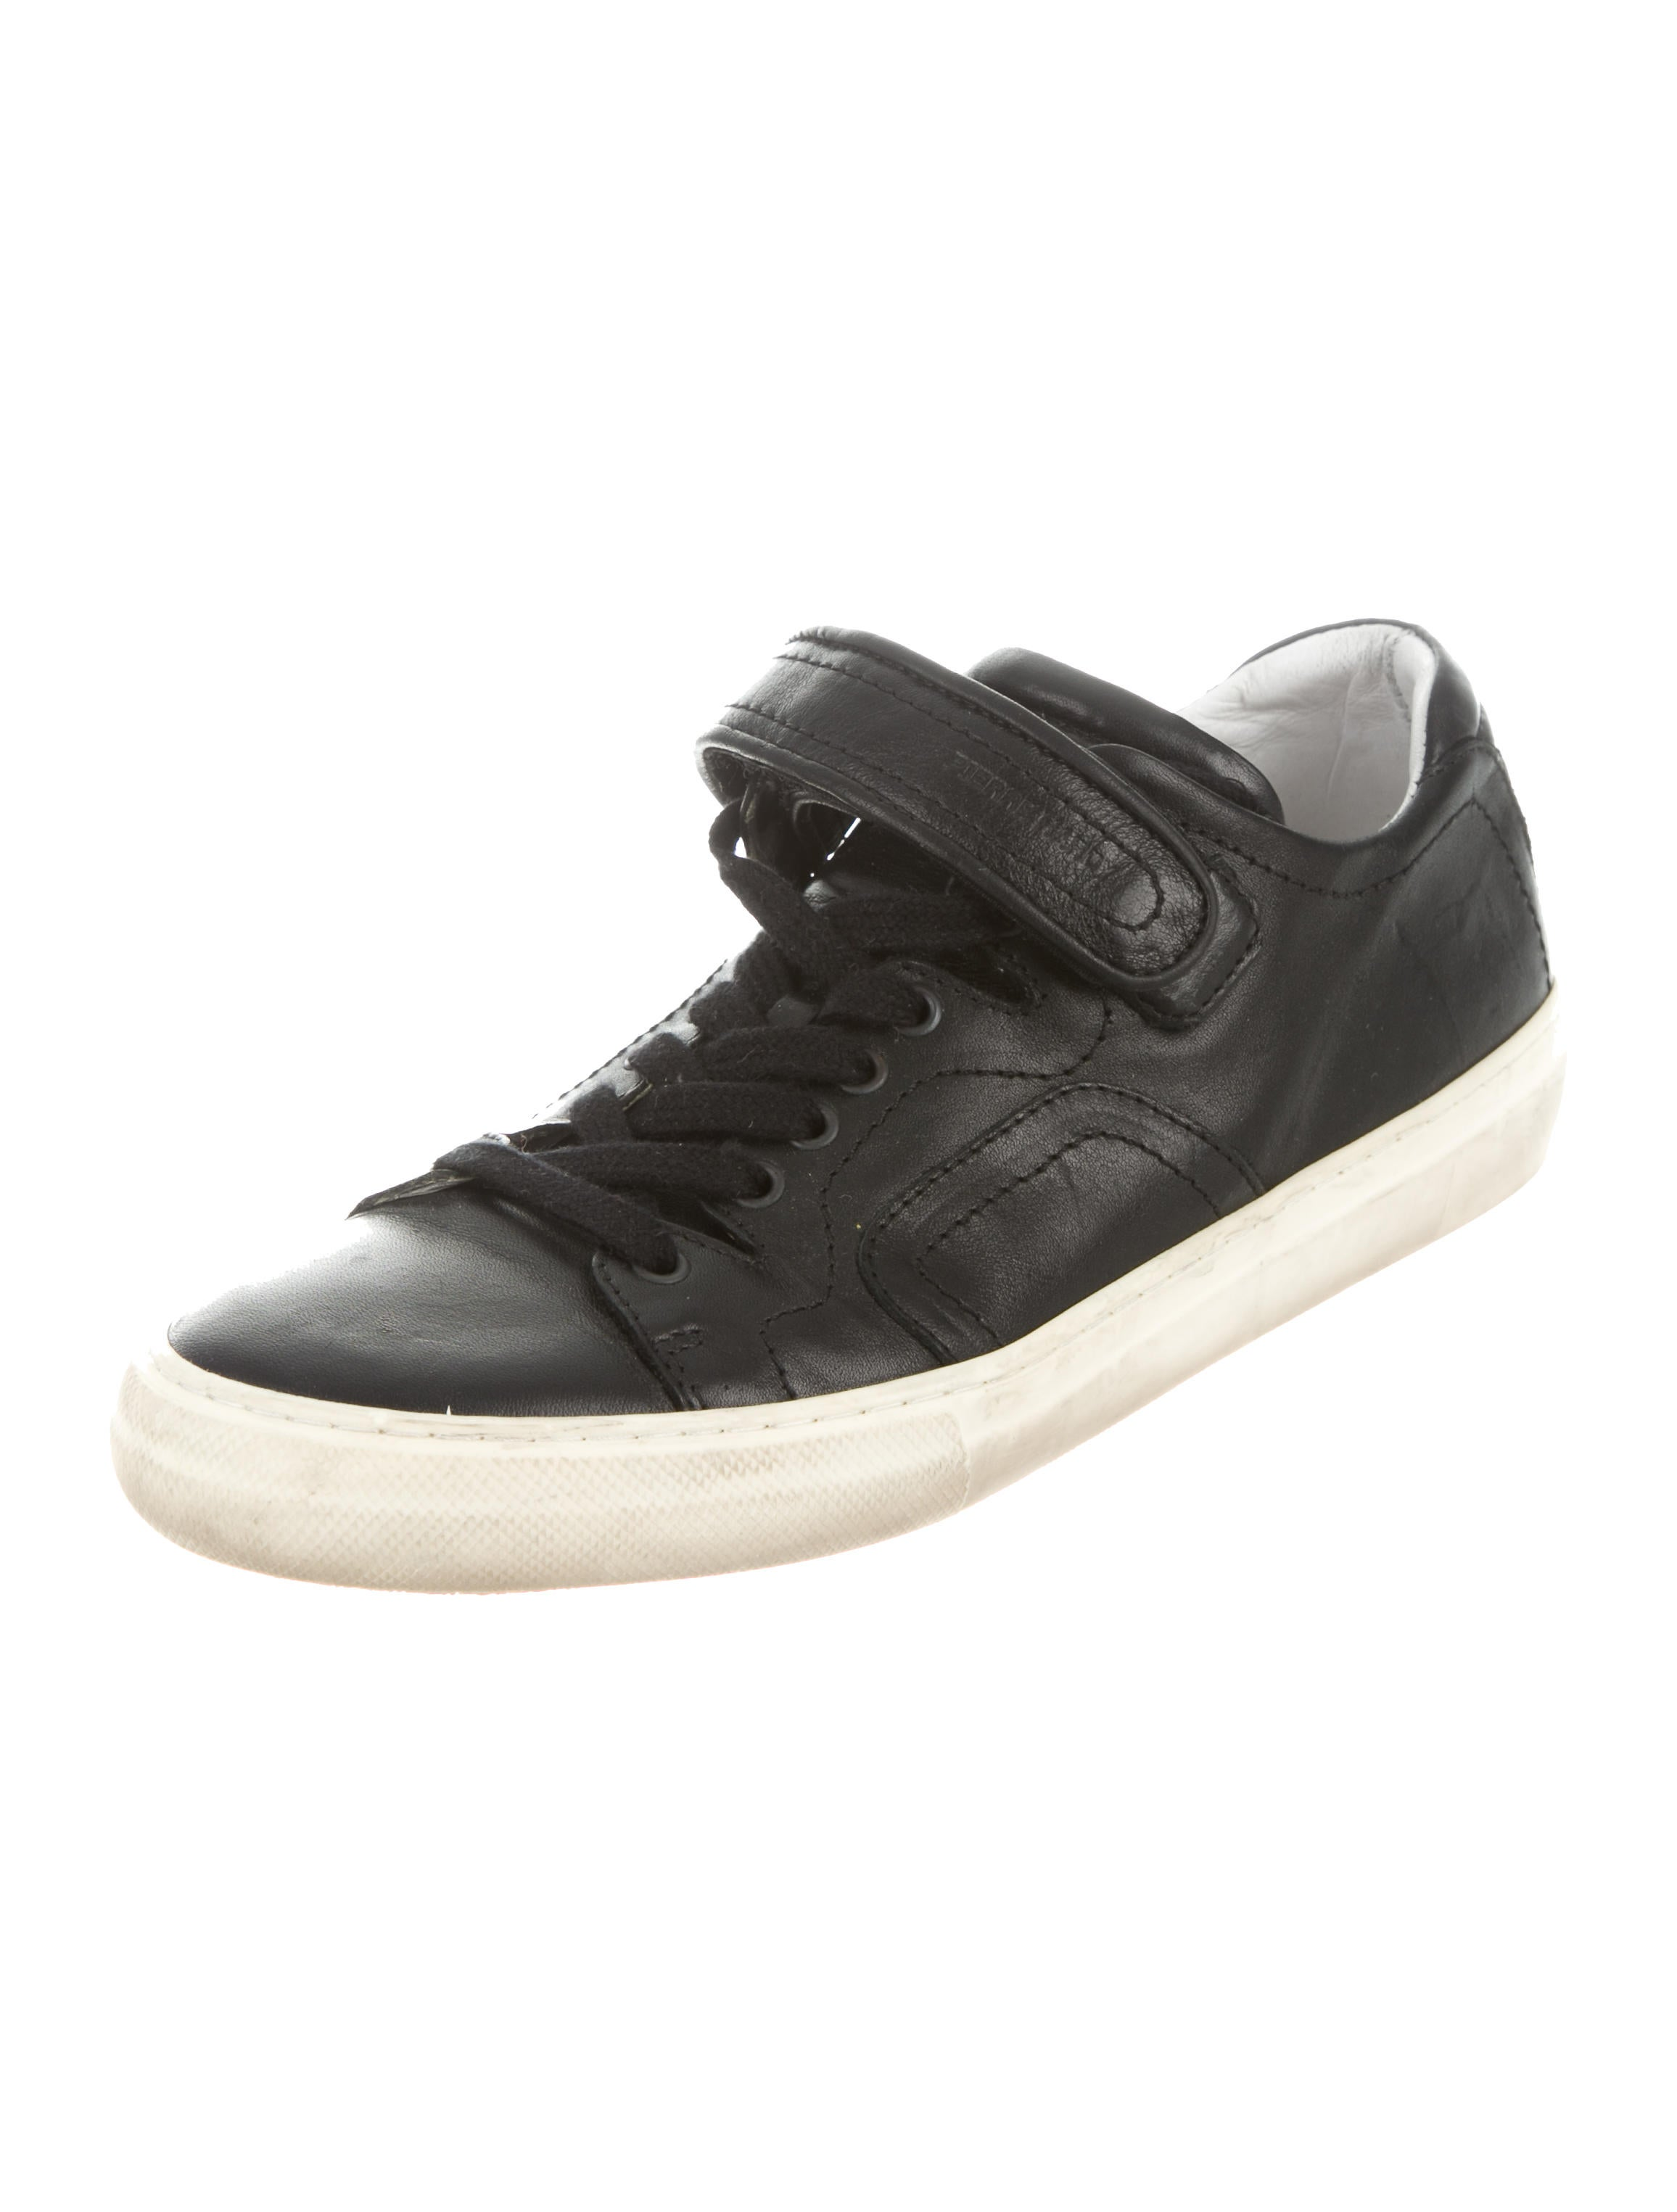 pierre hardy leather low top sneakers shoes pie23737 the realreal. Black Bedroom Furniture Sets. Home Design Ideas